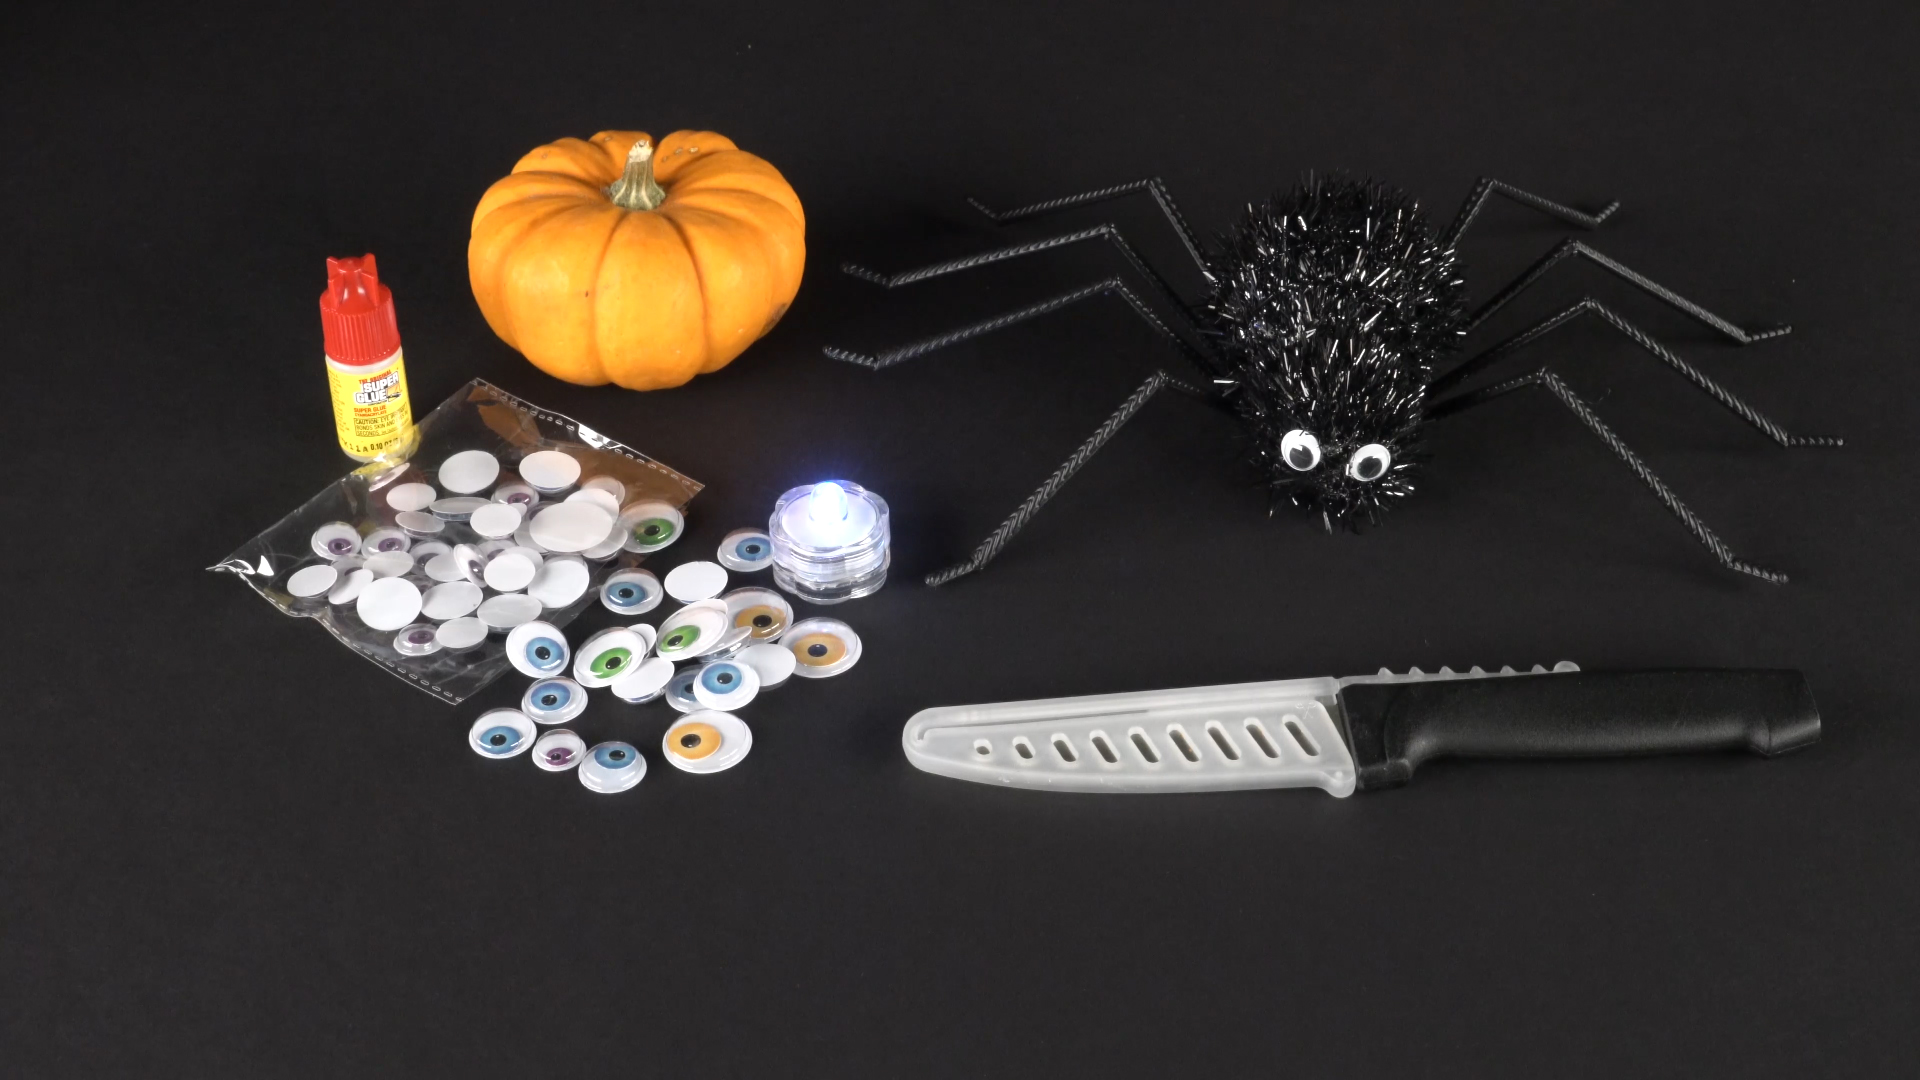 Halloween crafts with color-changing led tea lights - spider materials